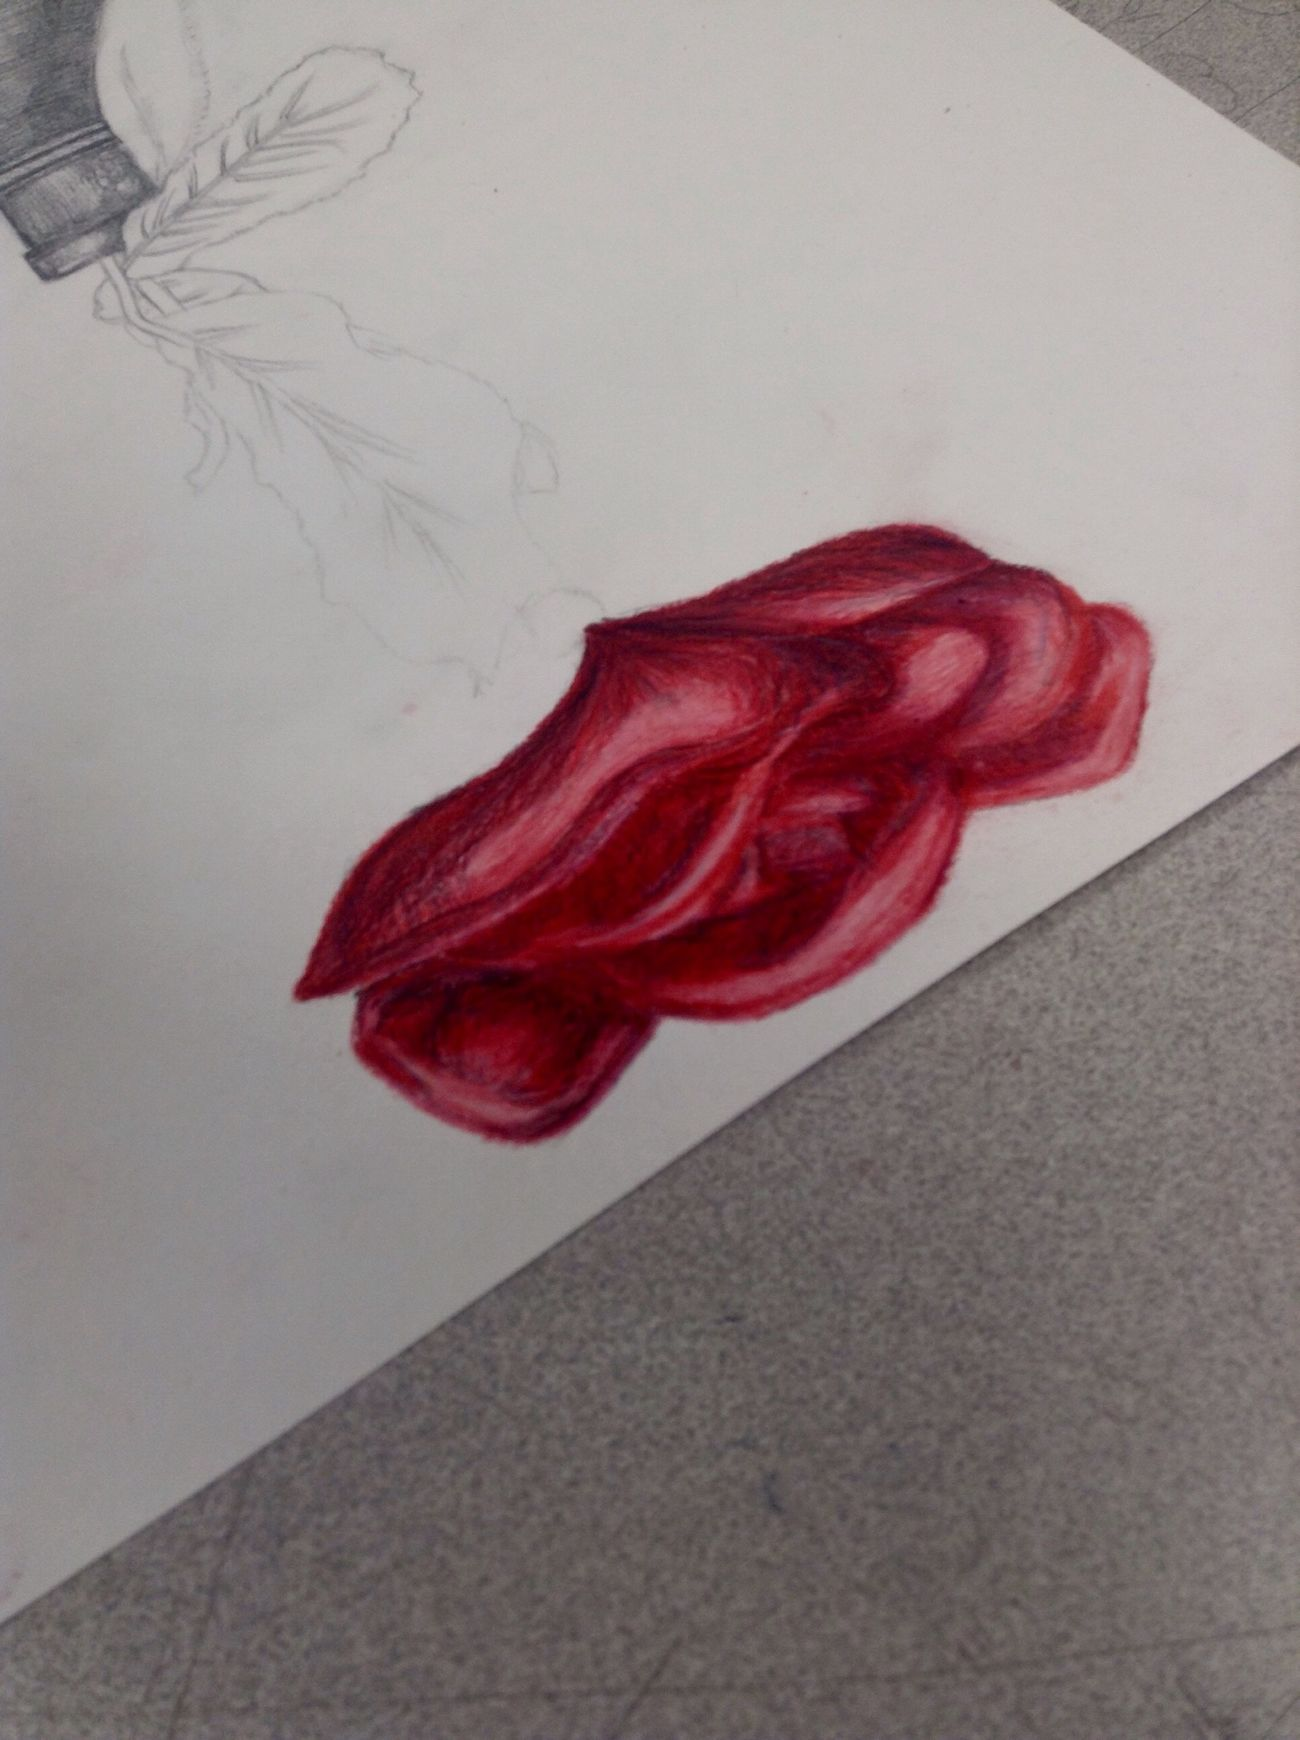 Working on another rose~ Doodle Sketch Drawing Colored Pencil School Red Rosé Opéra Black Ribbon Value